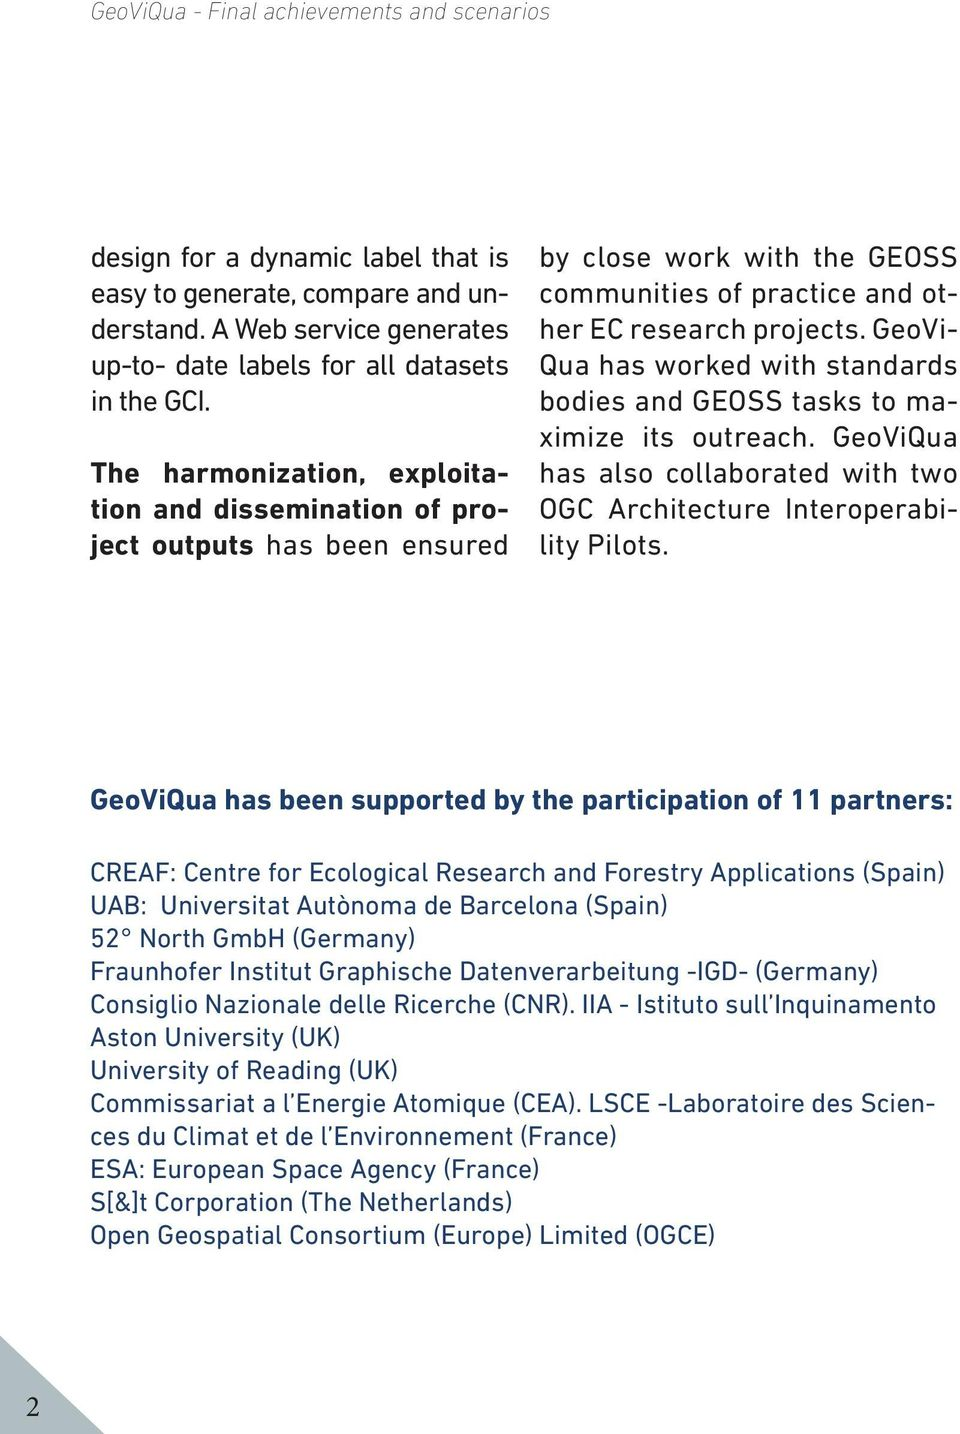 GeoVi- Qua has worked with standards bodies and GEOSS tasks to maximize its outreach. GeoViQua has also collaborated with two OGC Architecture Interoperability Pilots.